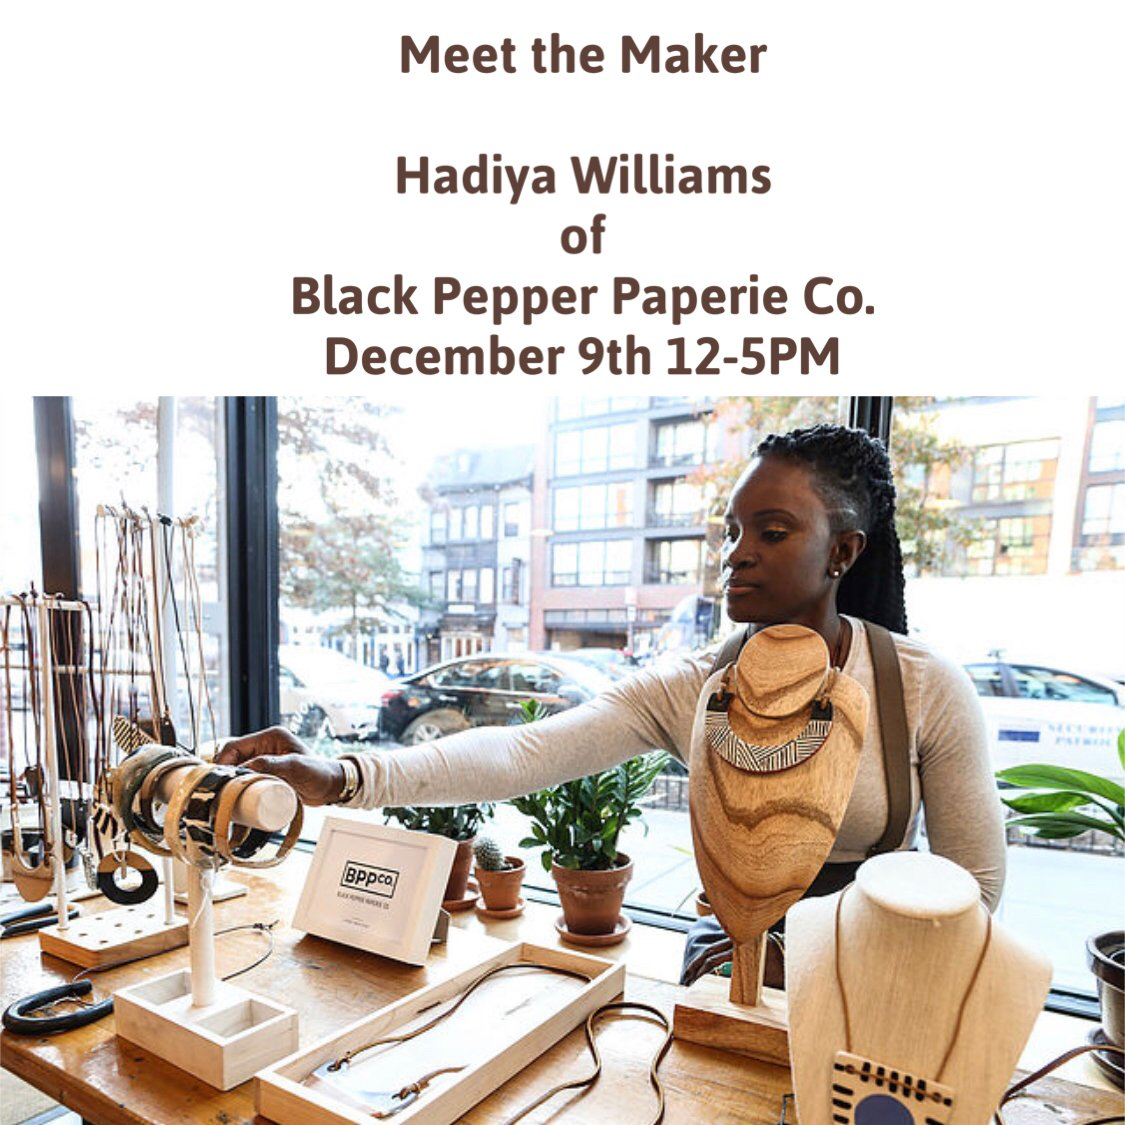 #ShopZawadi for your holiday gifts & purchase a collection of handmade clayware, jewelry & print works this weekend!